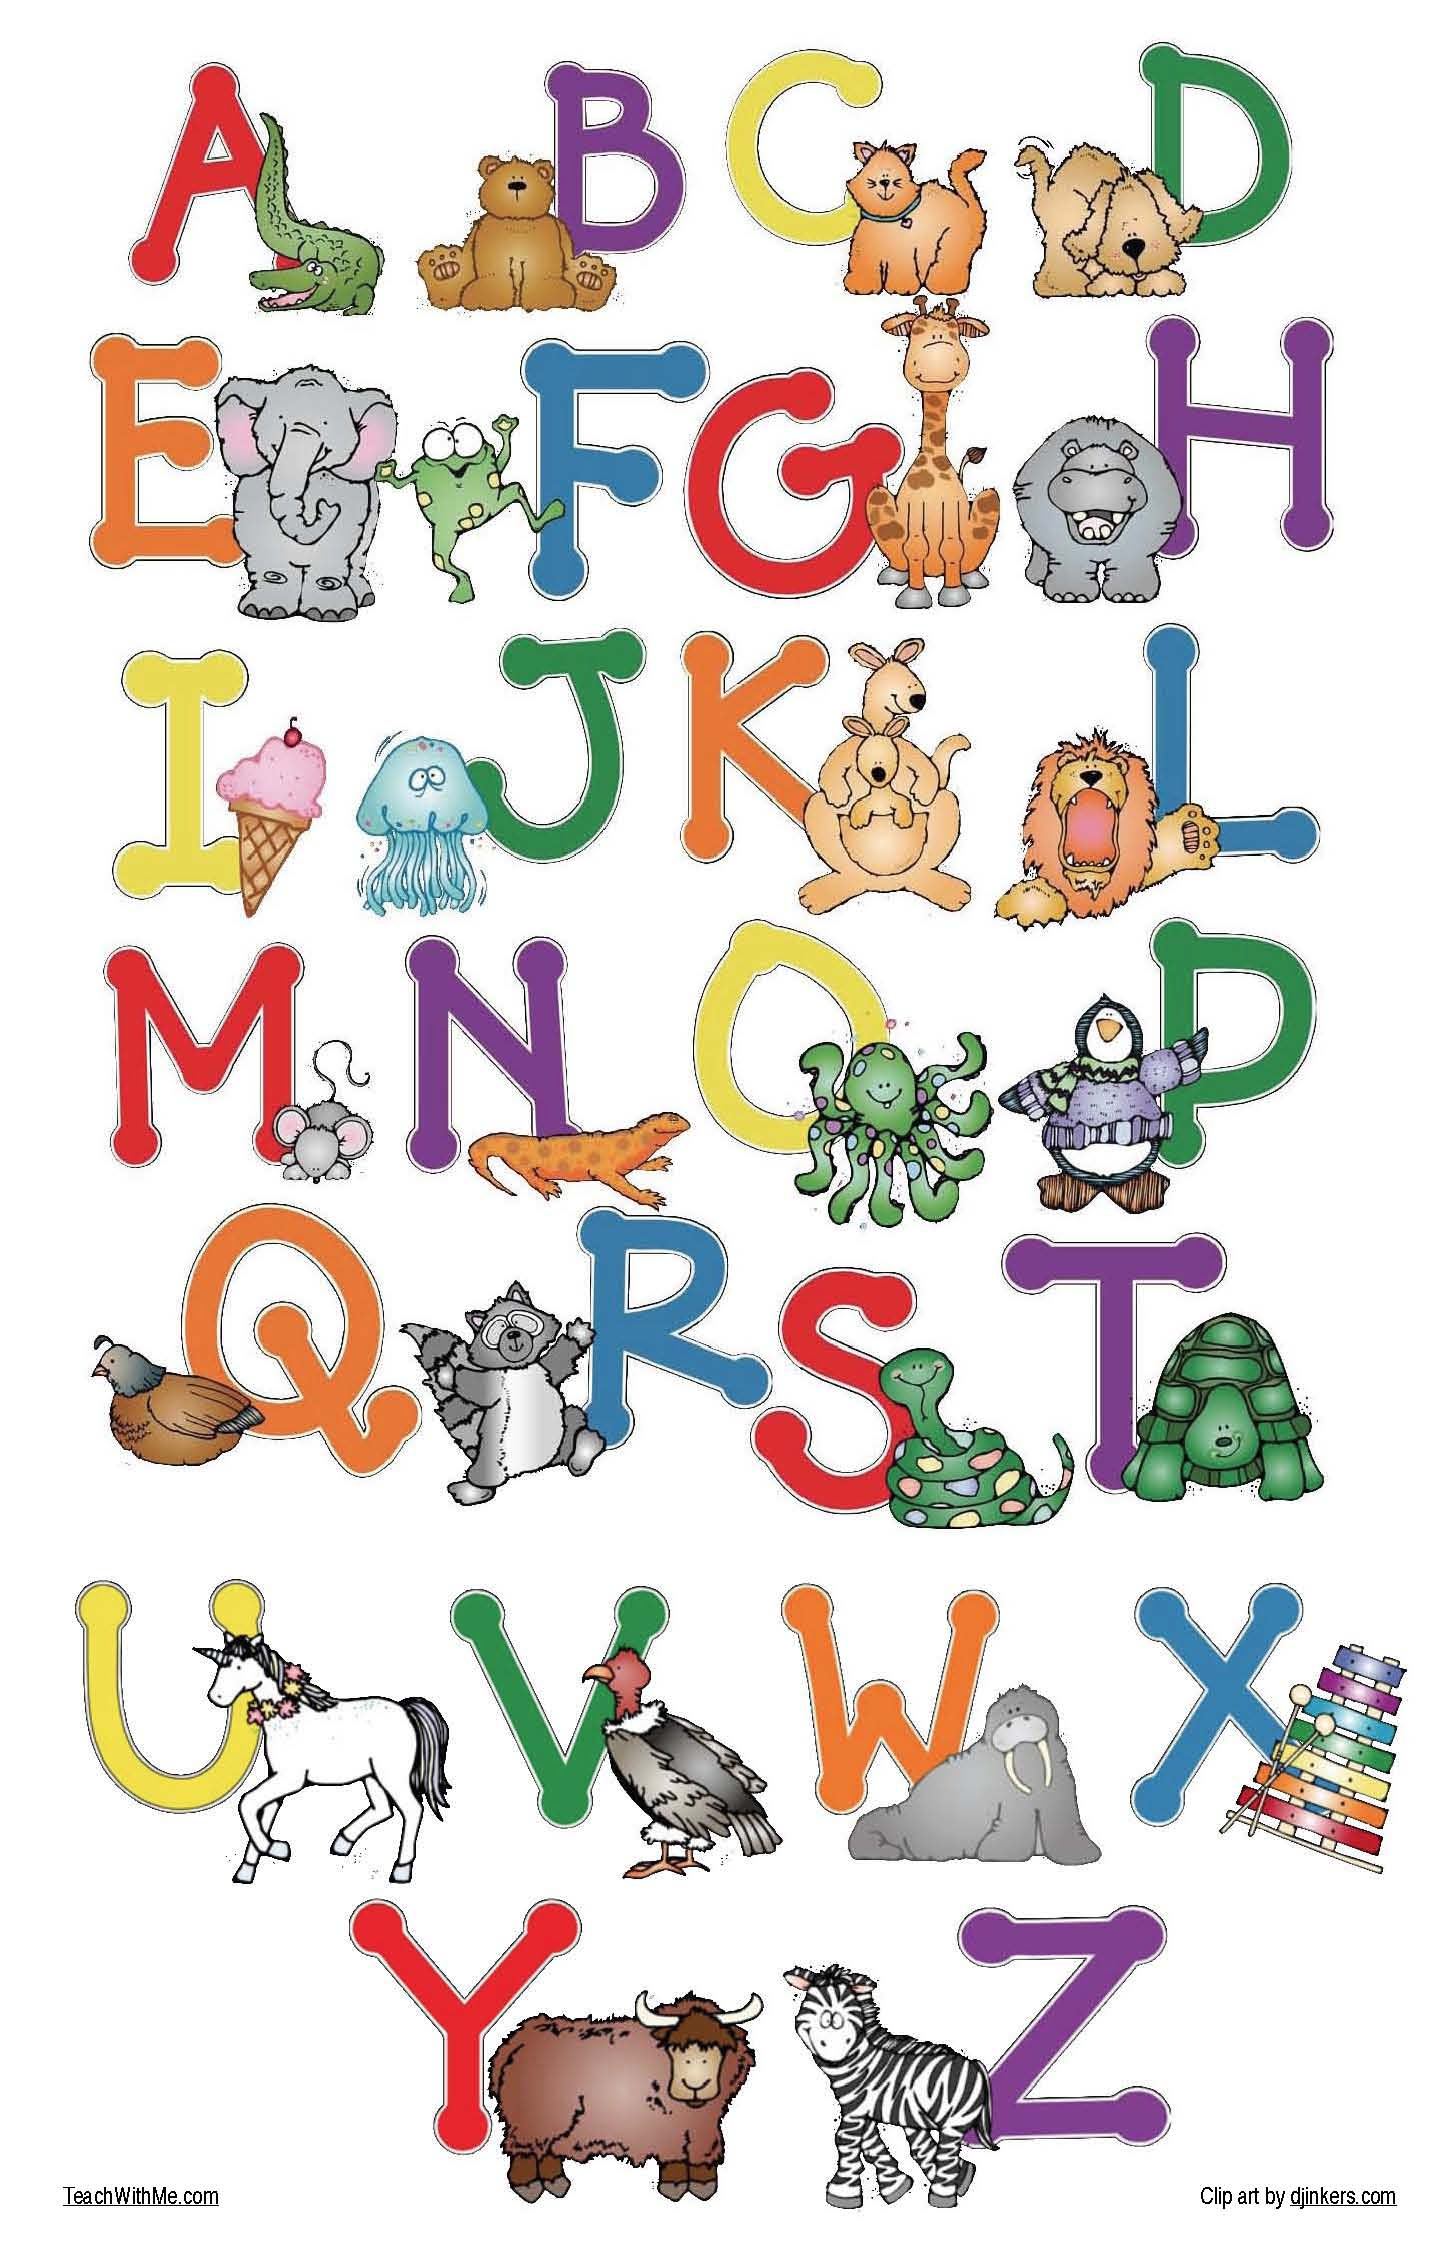 zoo activities, zoo fieldtrip activities, alphabet activities, alphabet booklet, animal alphabet booklet, alphabet games, alphabet anchor chart, alphabet posters, free alphabet posters, free anchor charts, common core state standards for kindergarten, common core state standards for first grade